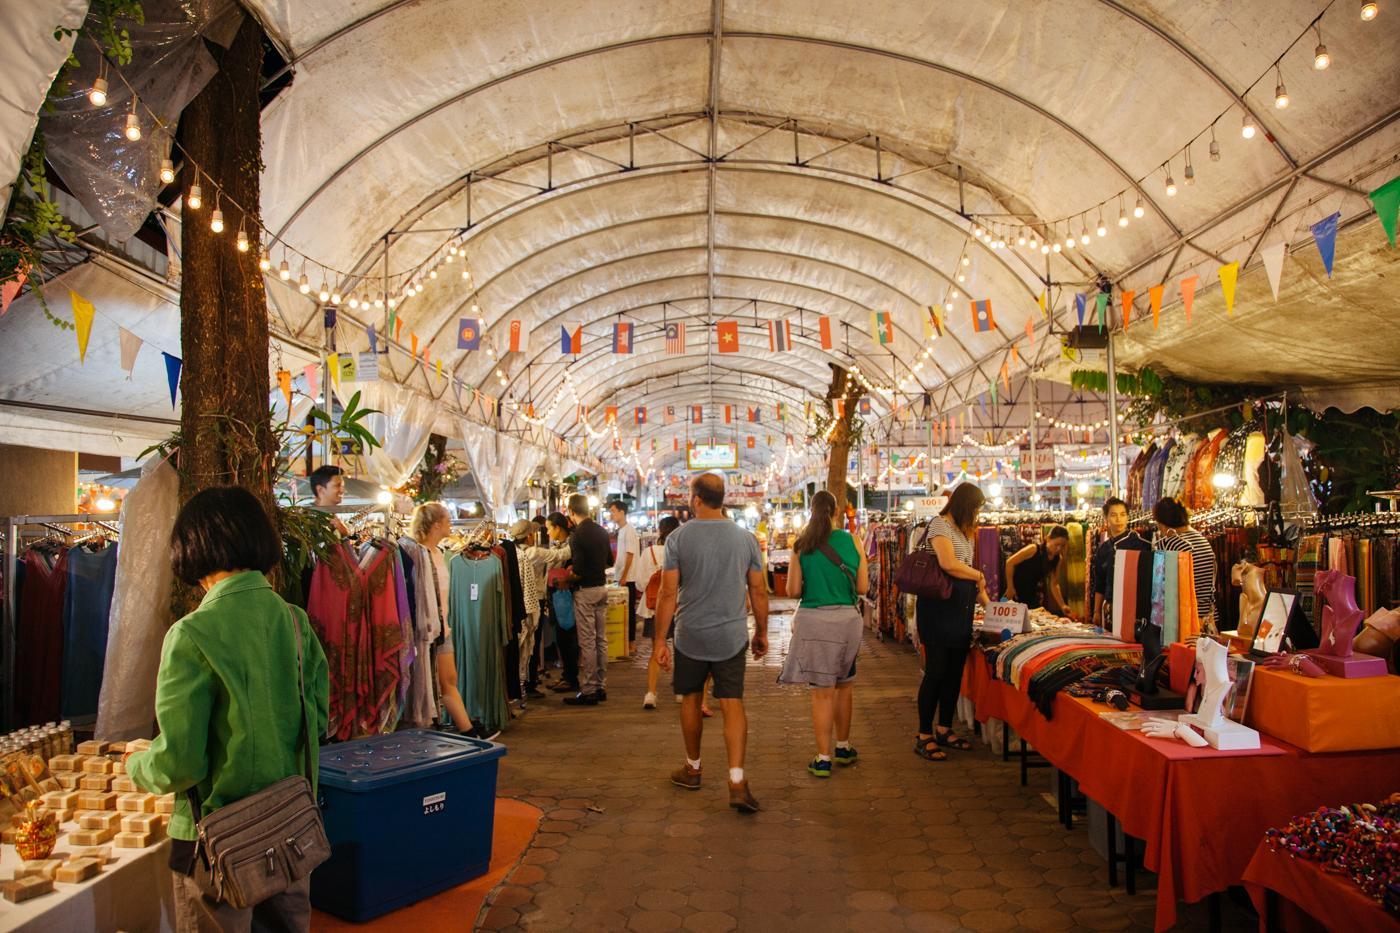 The Best Markets in Chiang Mai, Thailand Chiang Mai Night Bazaar Map on night market map, chiang mai night bazaar shopping, chiang mai thailand sweethearts, koh tao map, chiang mai sunday market,